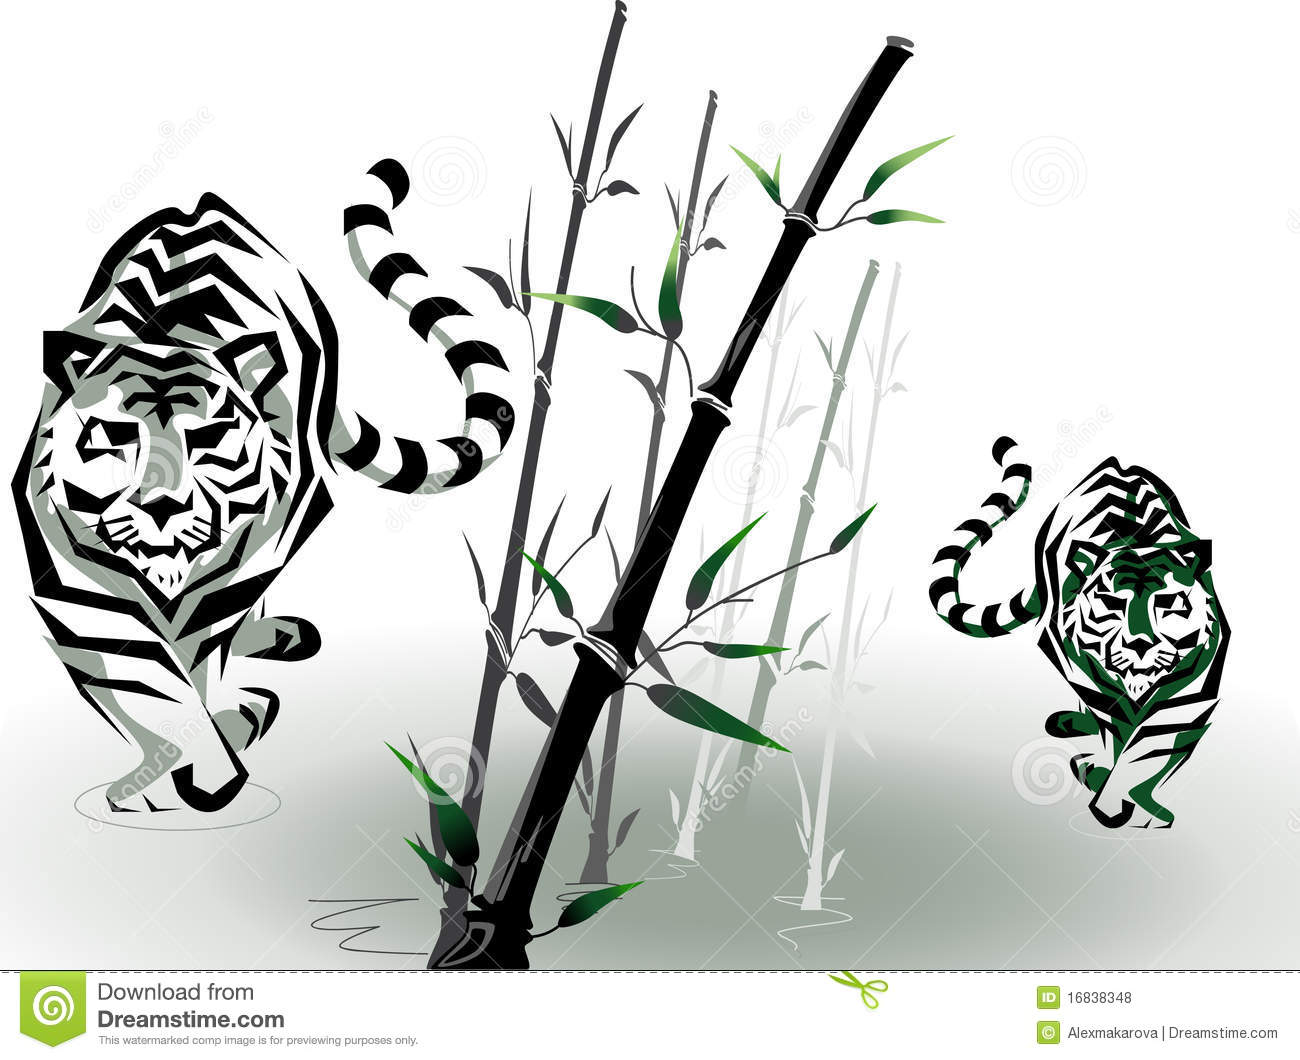 Dreams about tigers meaning